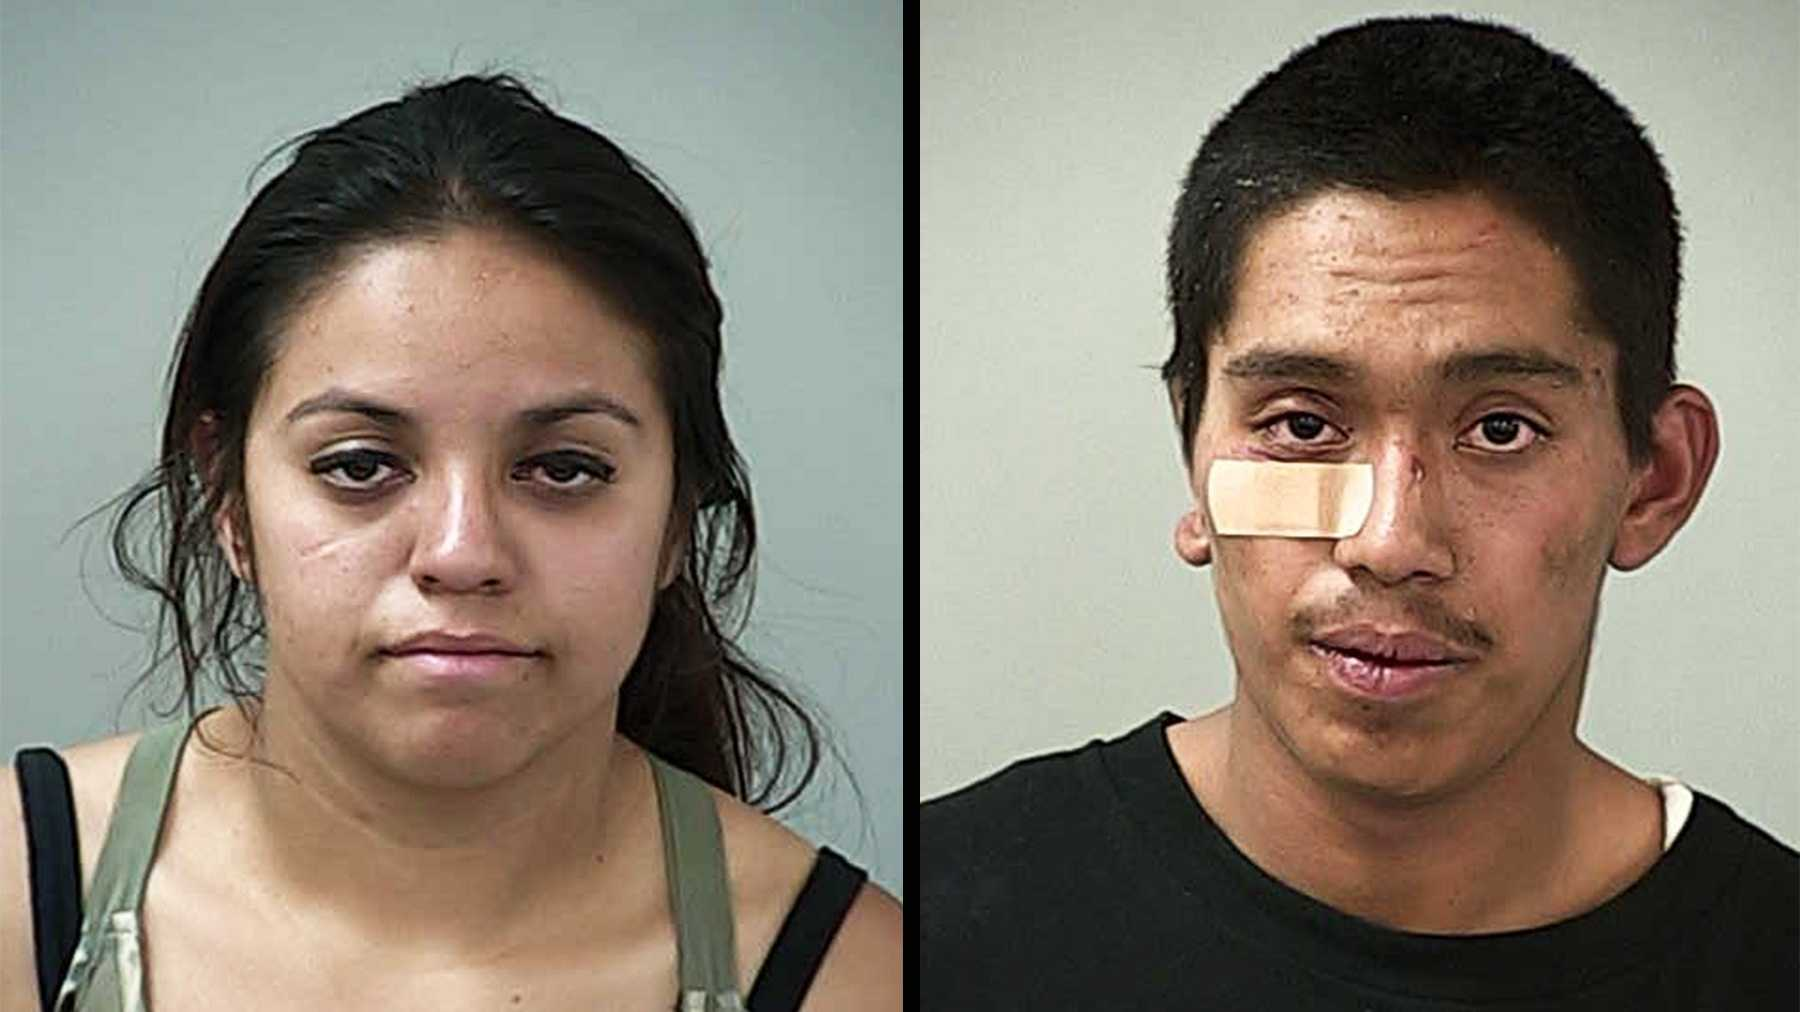 Carmen Tellez, 20, and Miguel Angel Mejia, 18, live in San Jose.